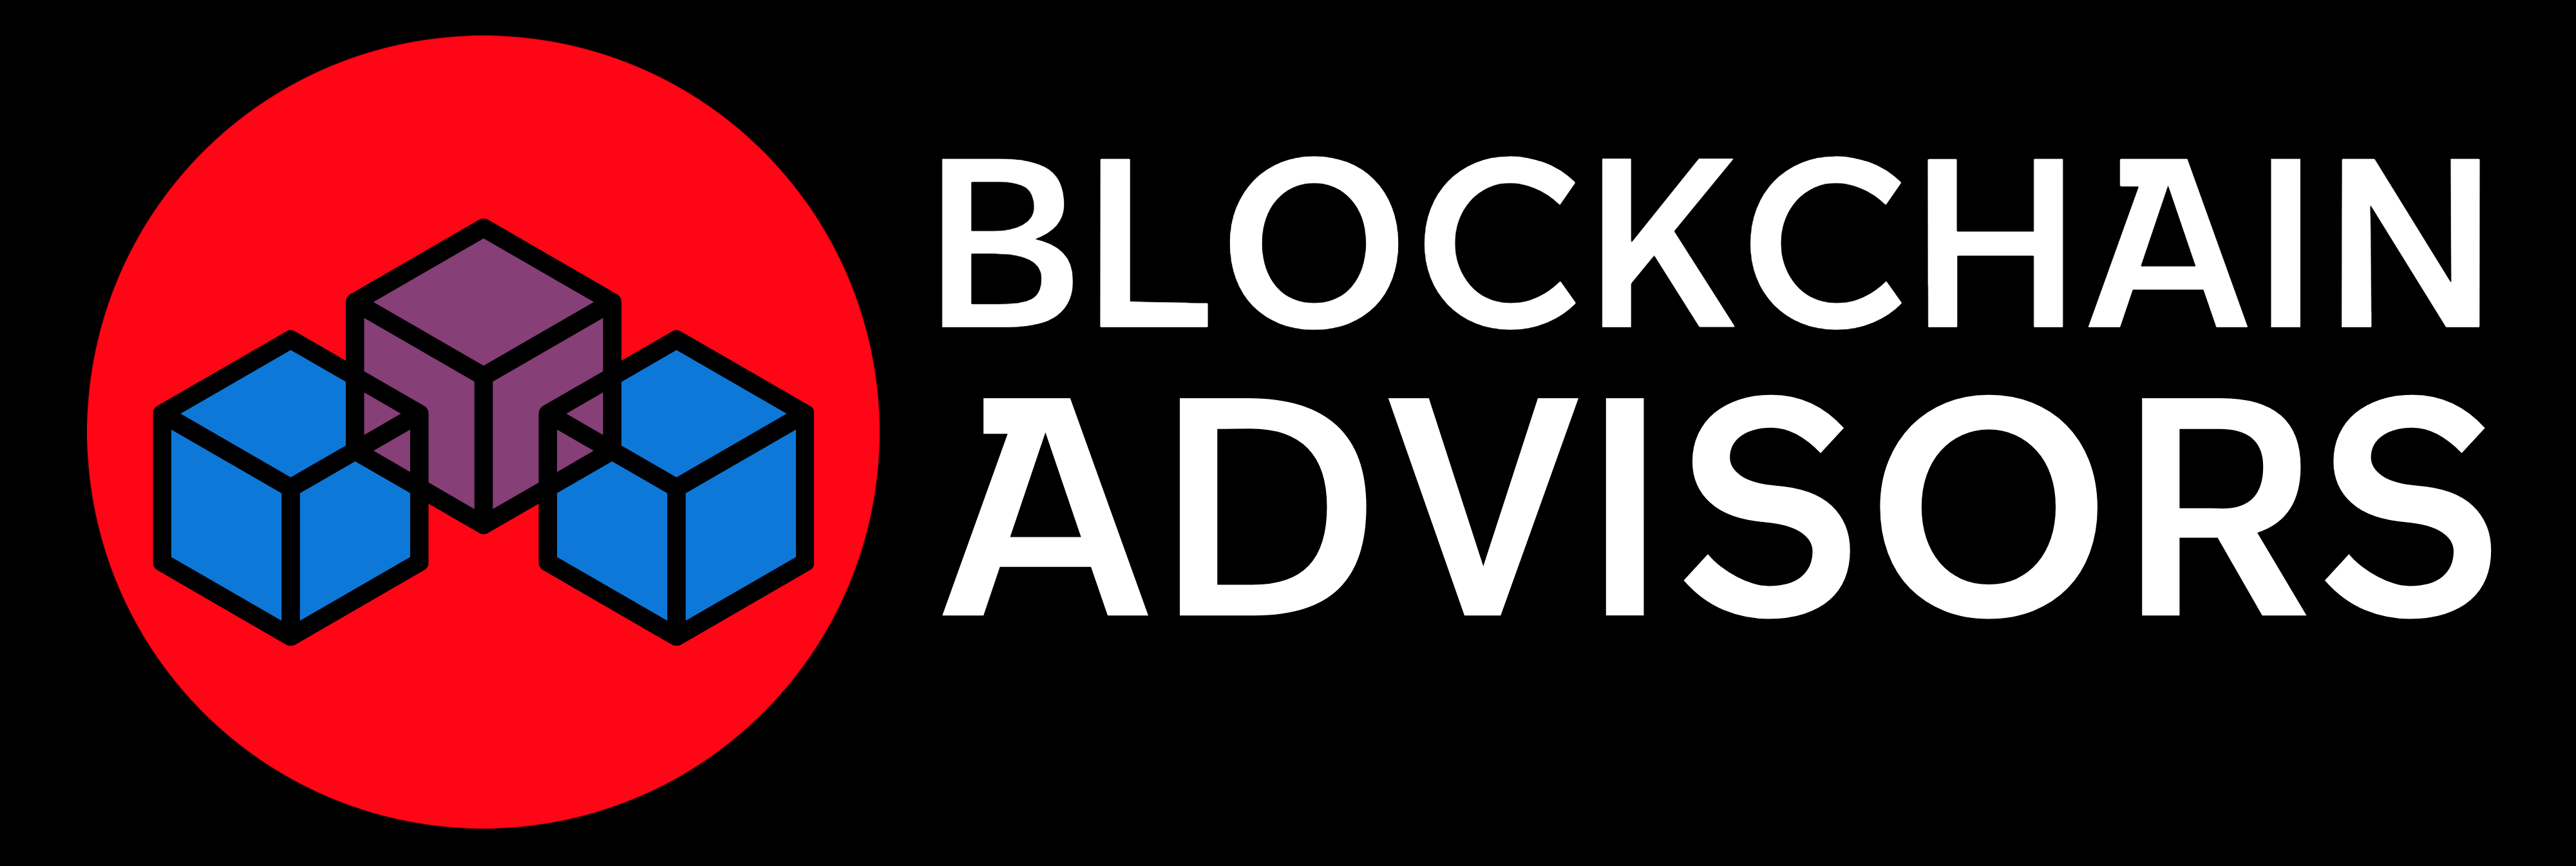 BLOCKCHAIN ADVISORS